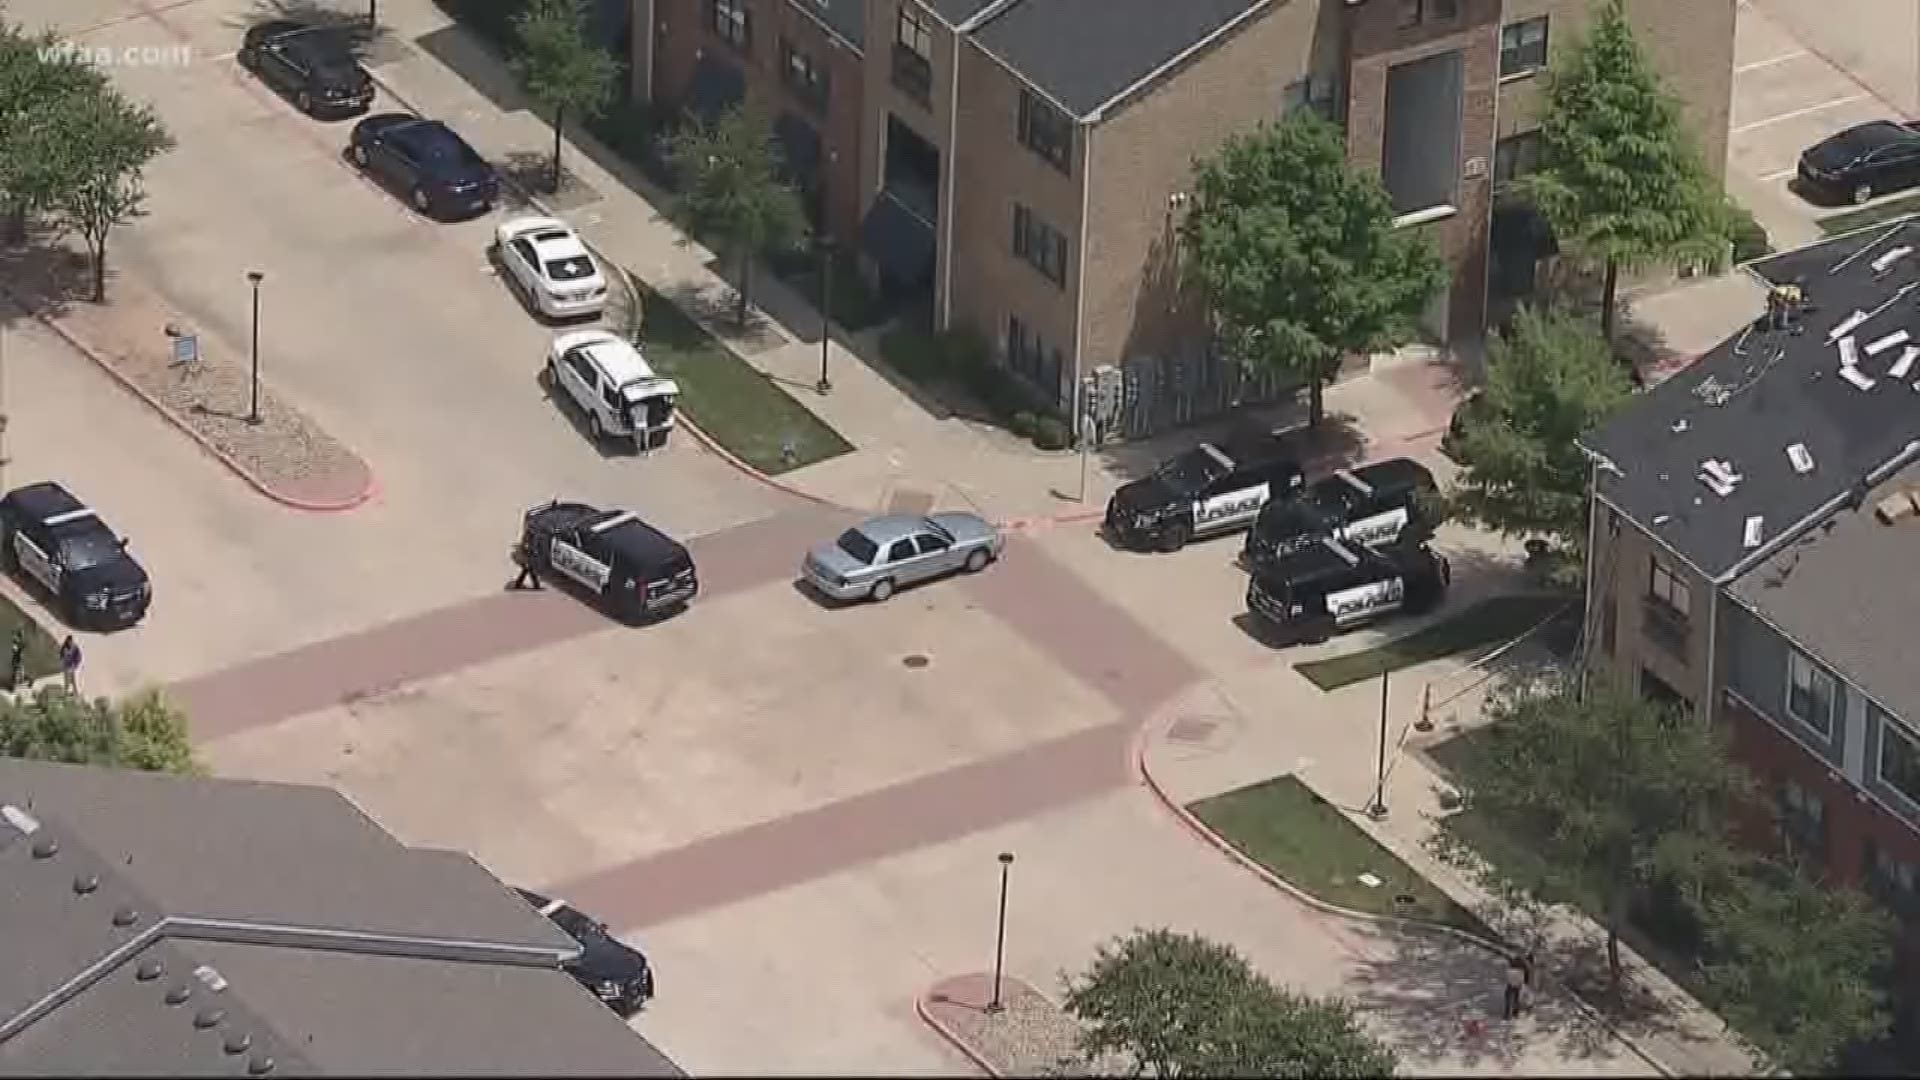 Teen Faces Charges In Connection With Shooting Death Of 10 Year Old Mckinney Boy Wfaa Com